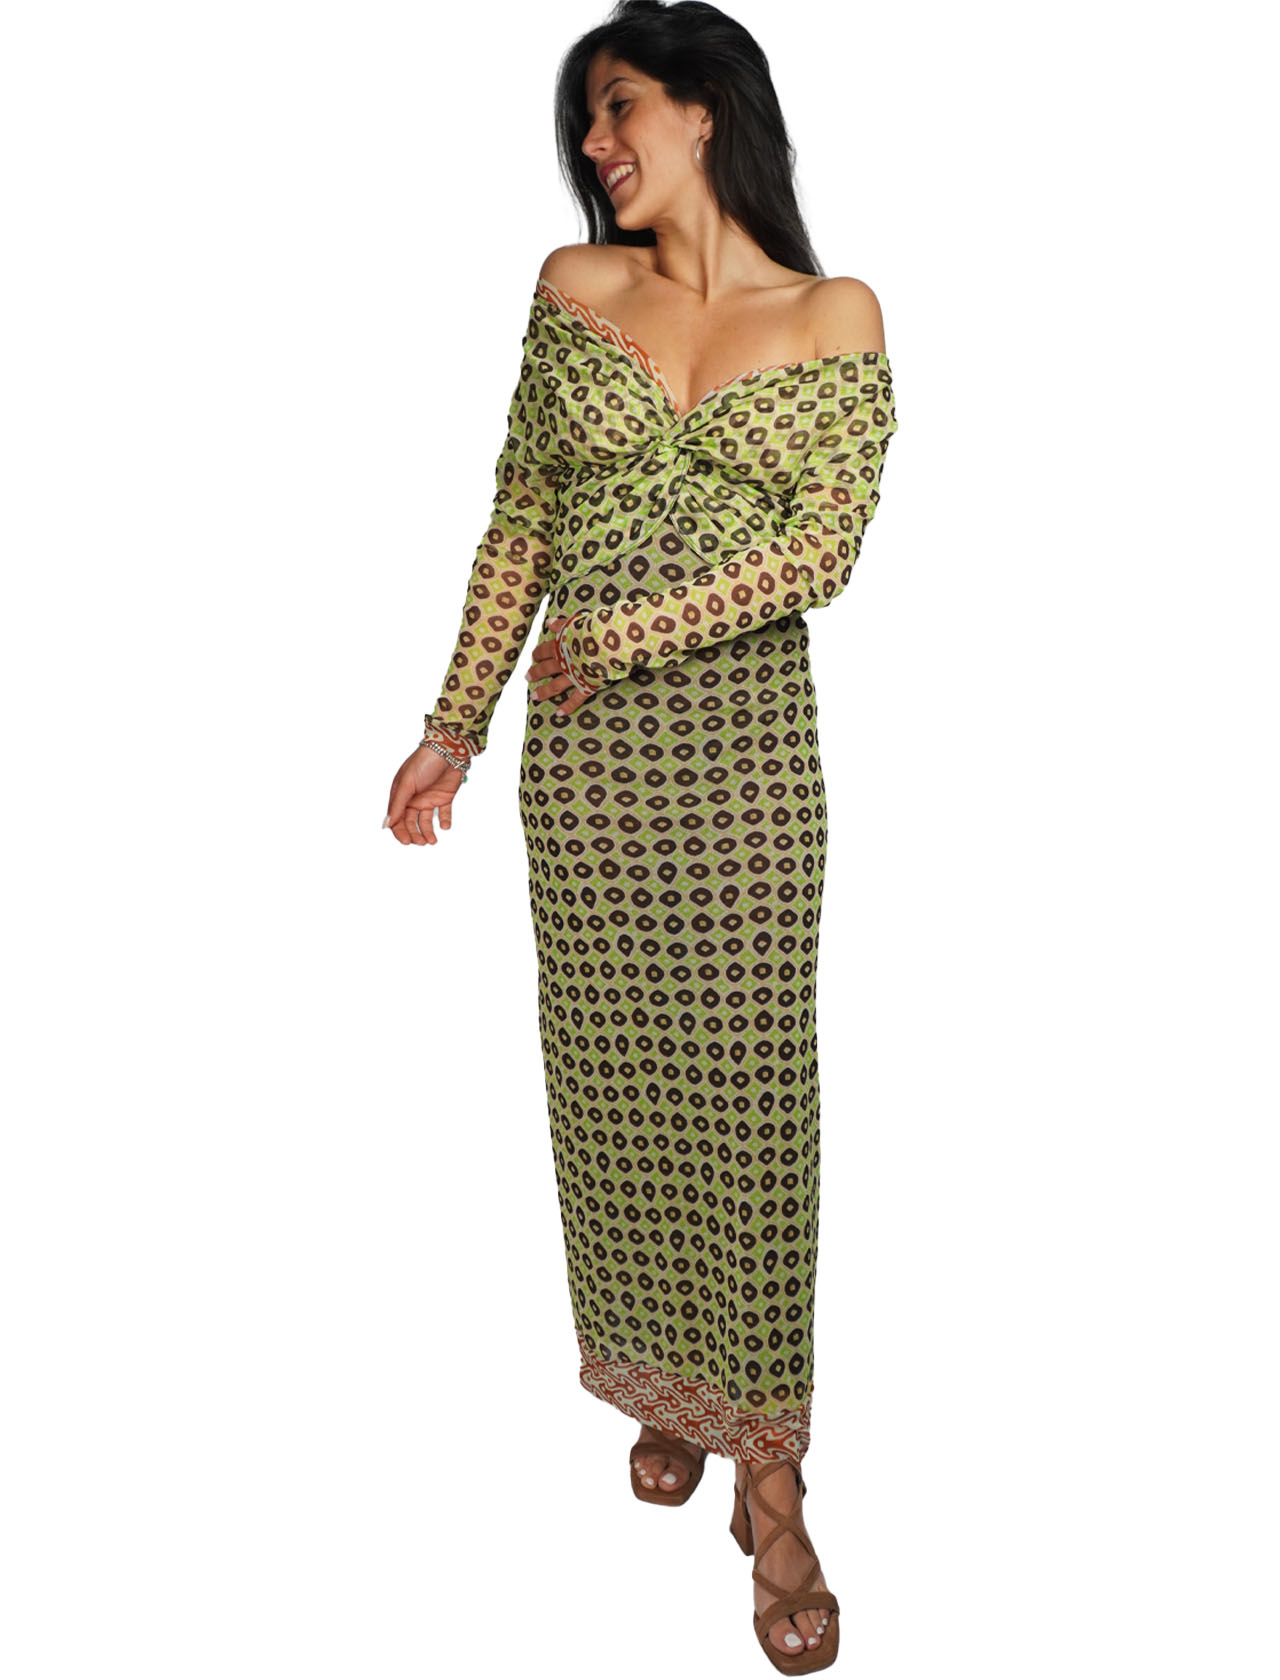 Women's Clothing Long Tribal Dance Dress in Green and Gold Patterned Tulle Maliparmi | Dresses | JF643570494C6020